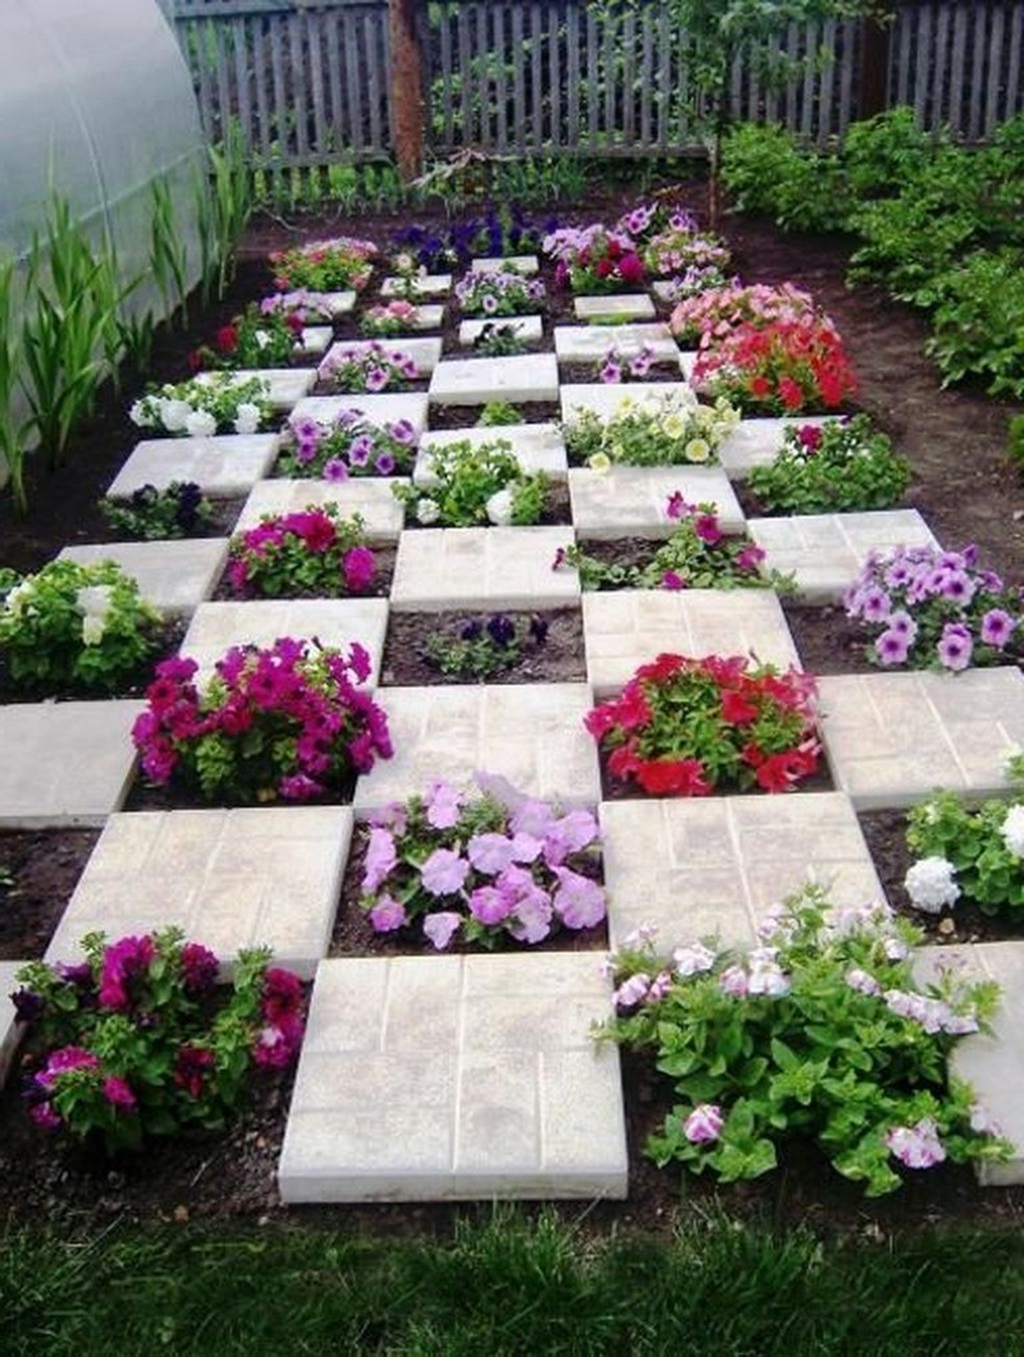 Stunning Backyard Flower Garden Ideas You Should Copy Now 36